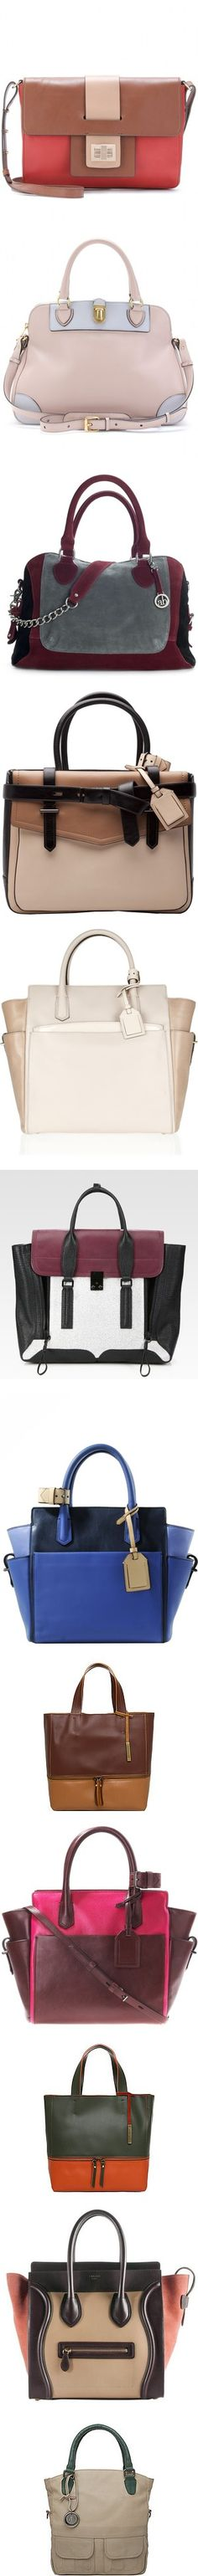 """""""colorblock bags"""" by sagramora ❤ liked on Polyvore"""